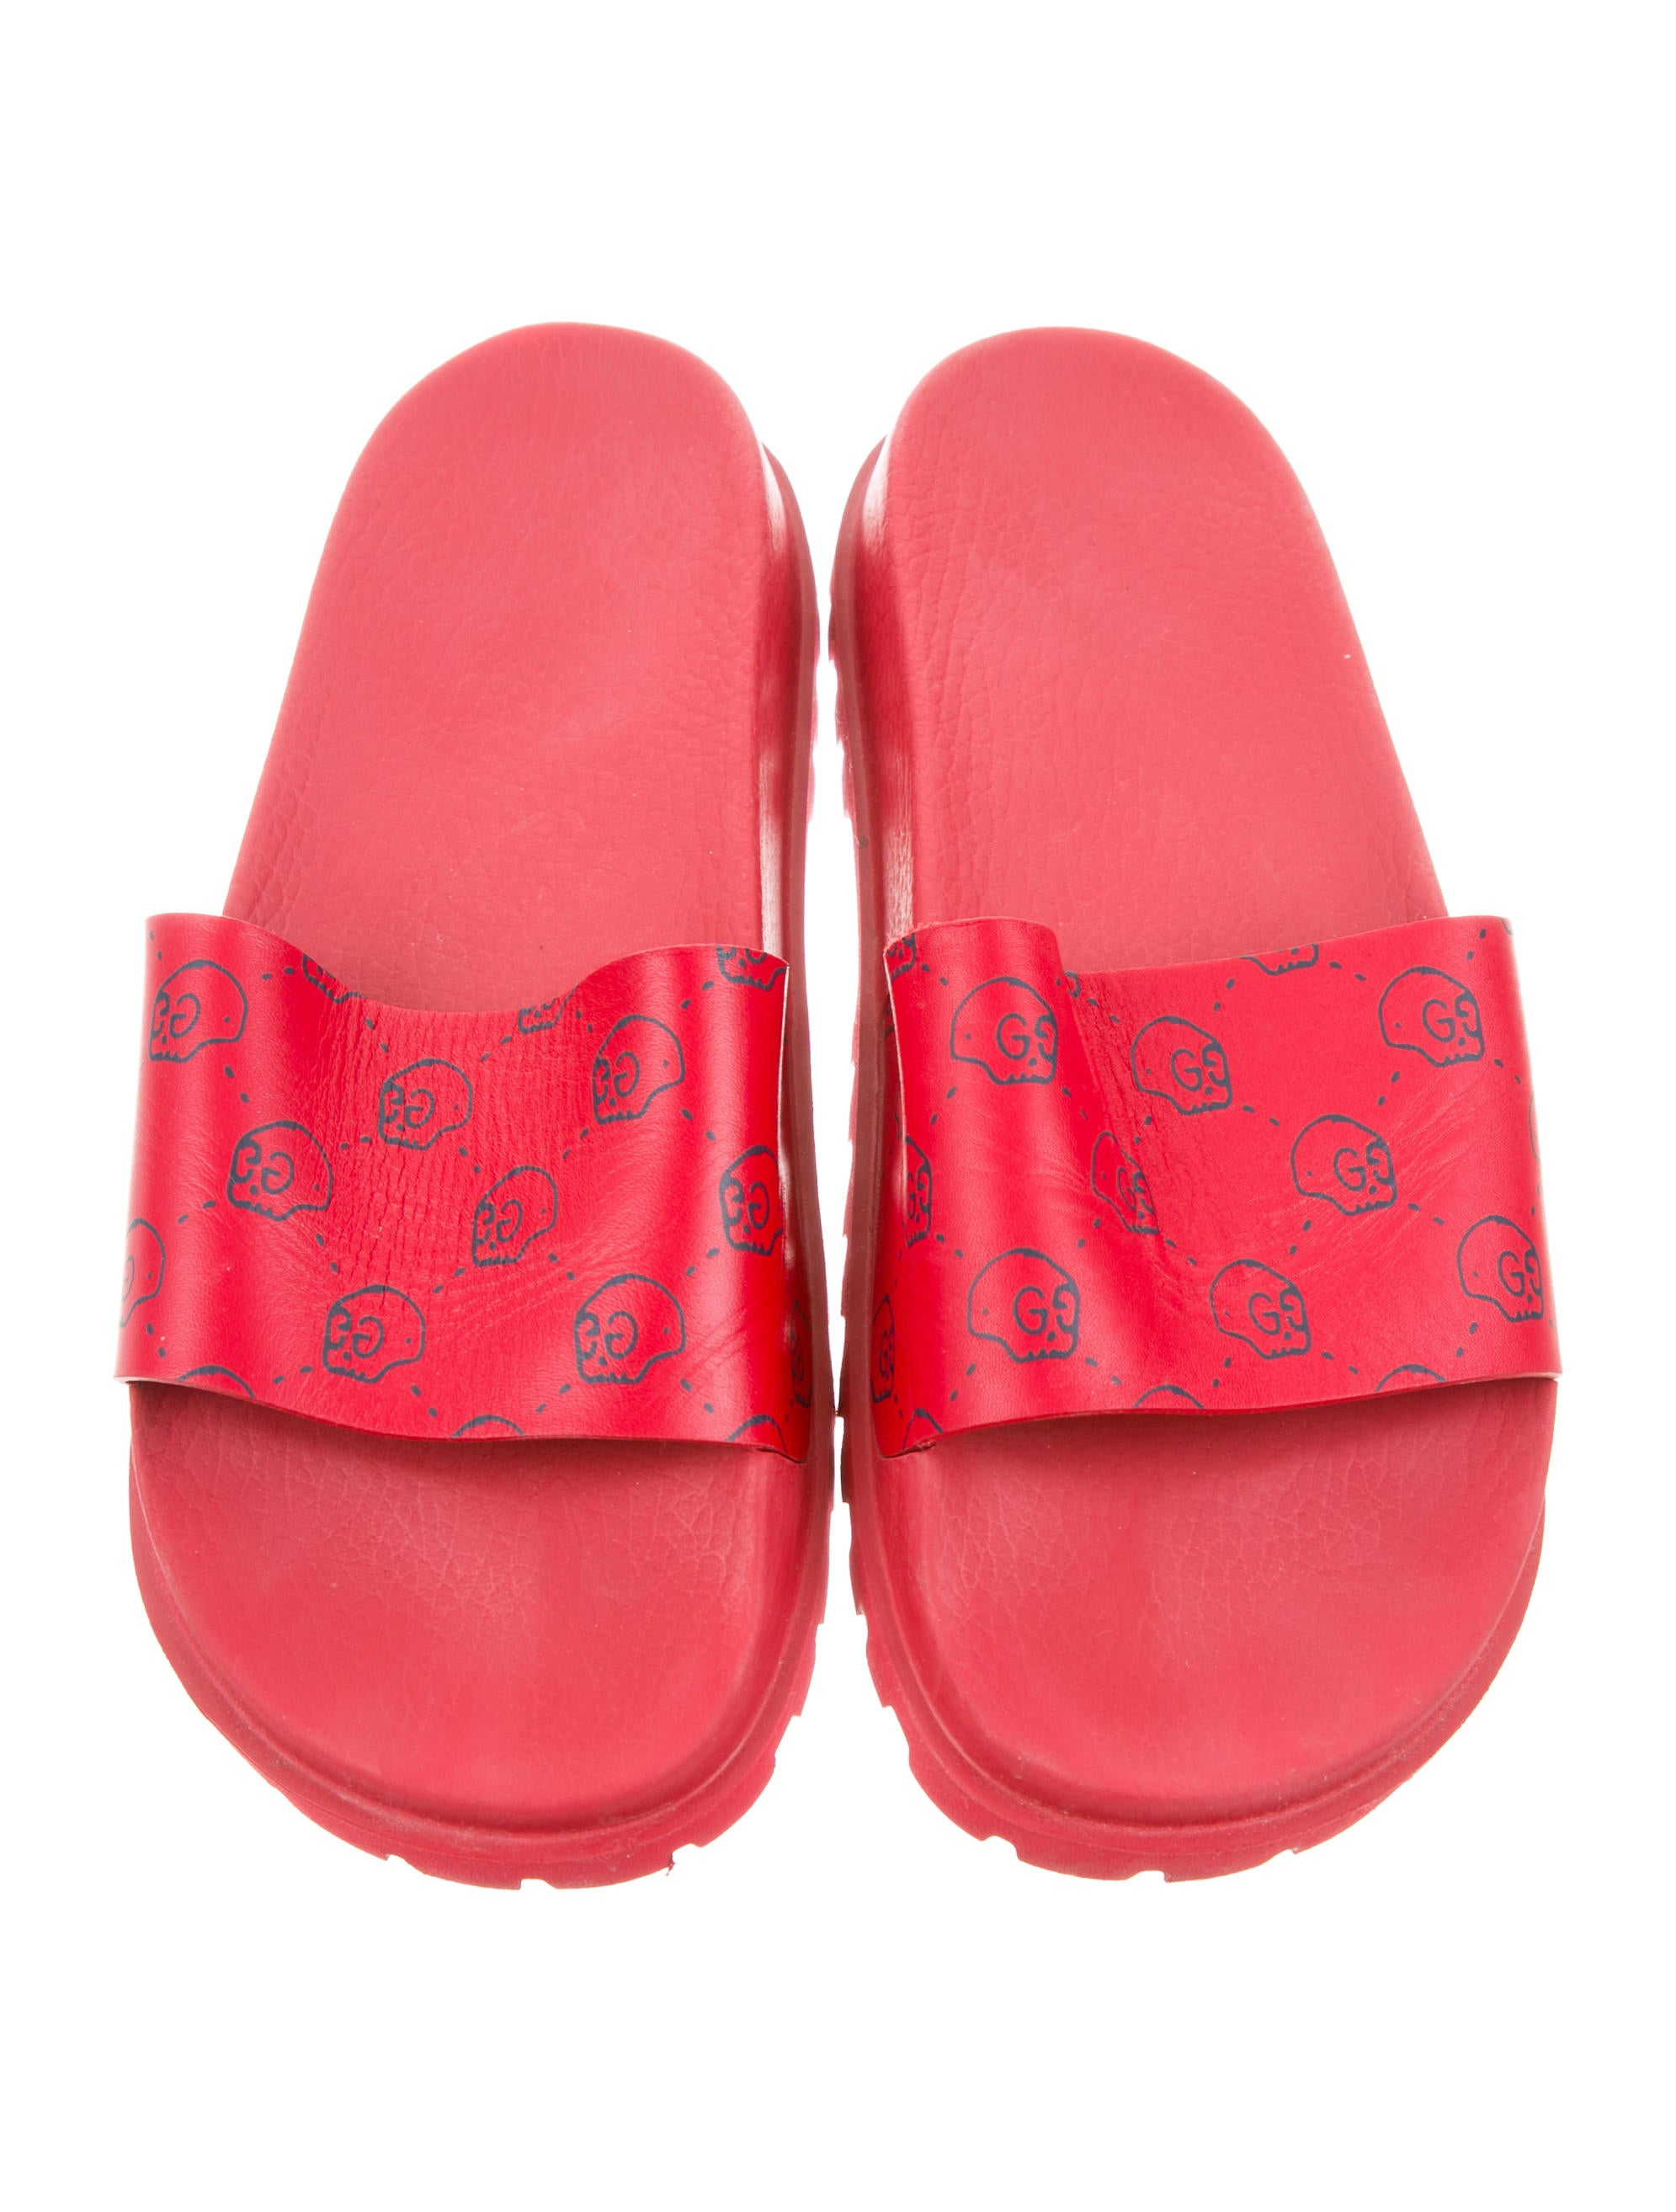 Gucci Guccighost Leather Slides - Shoes - GUC162208 | The ...